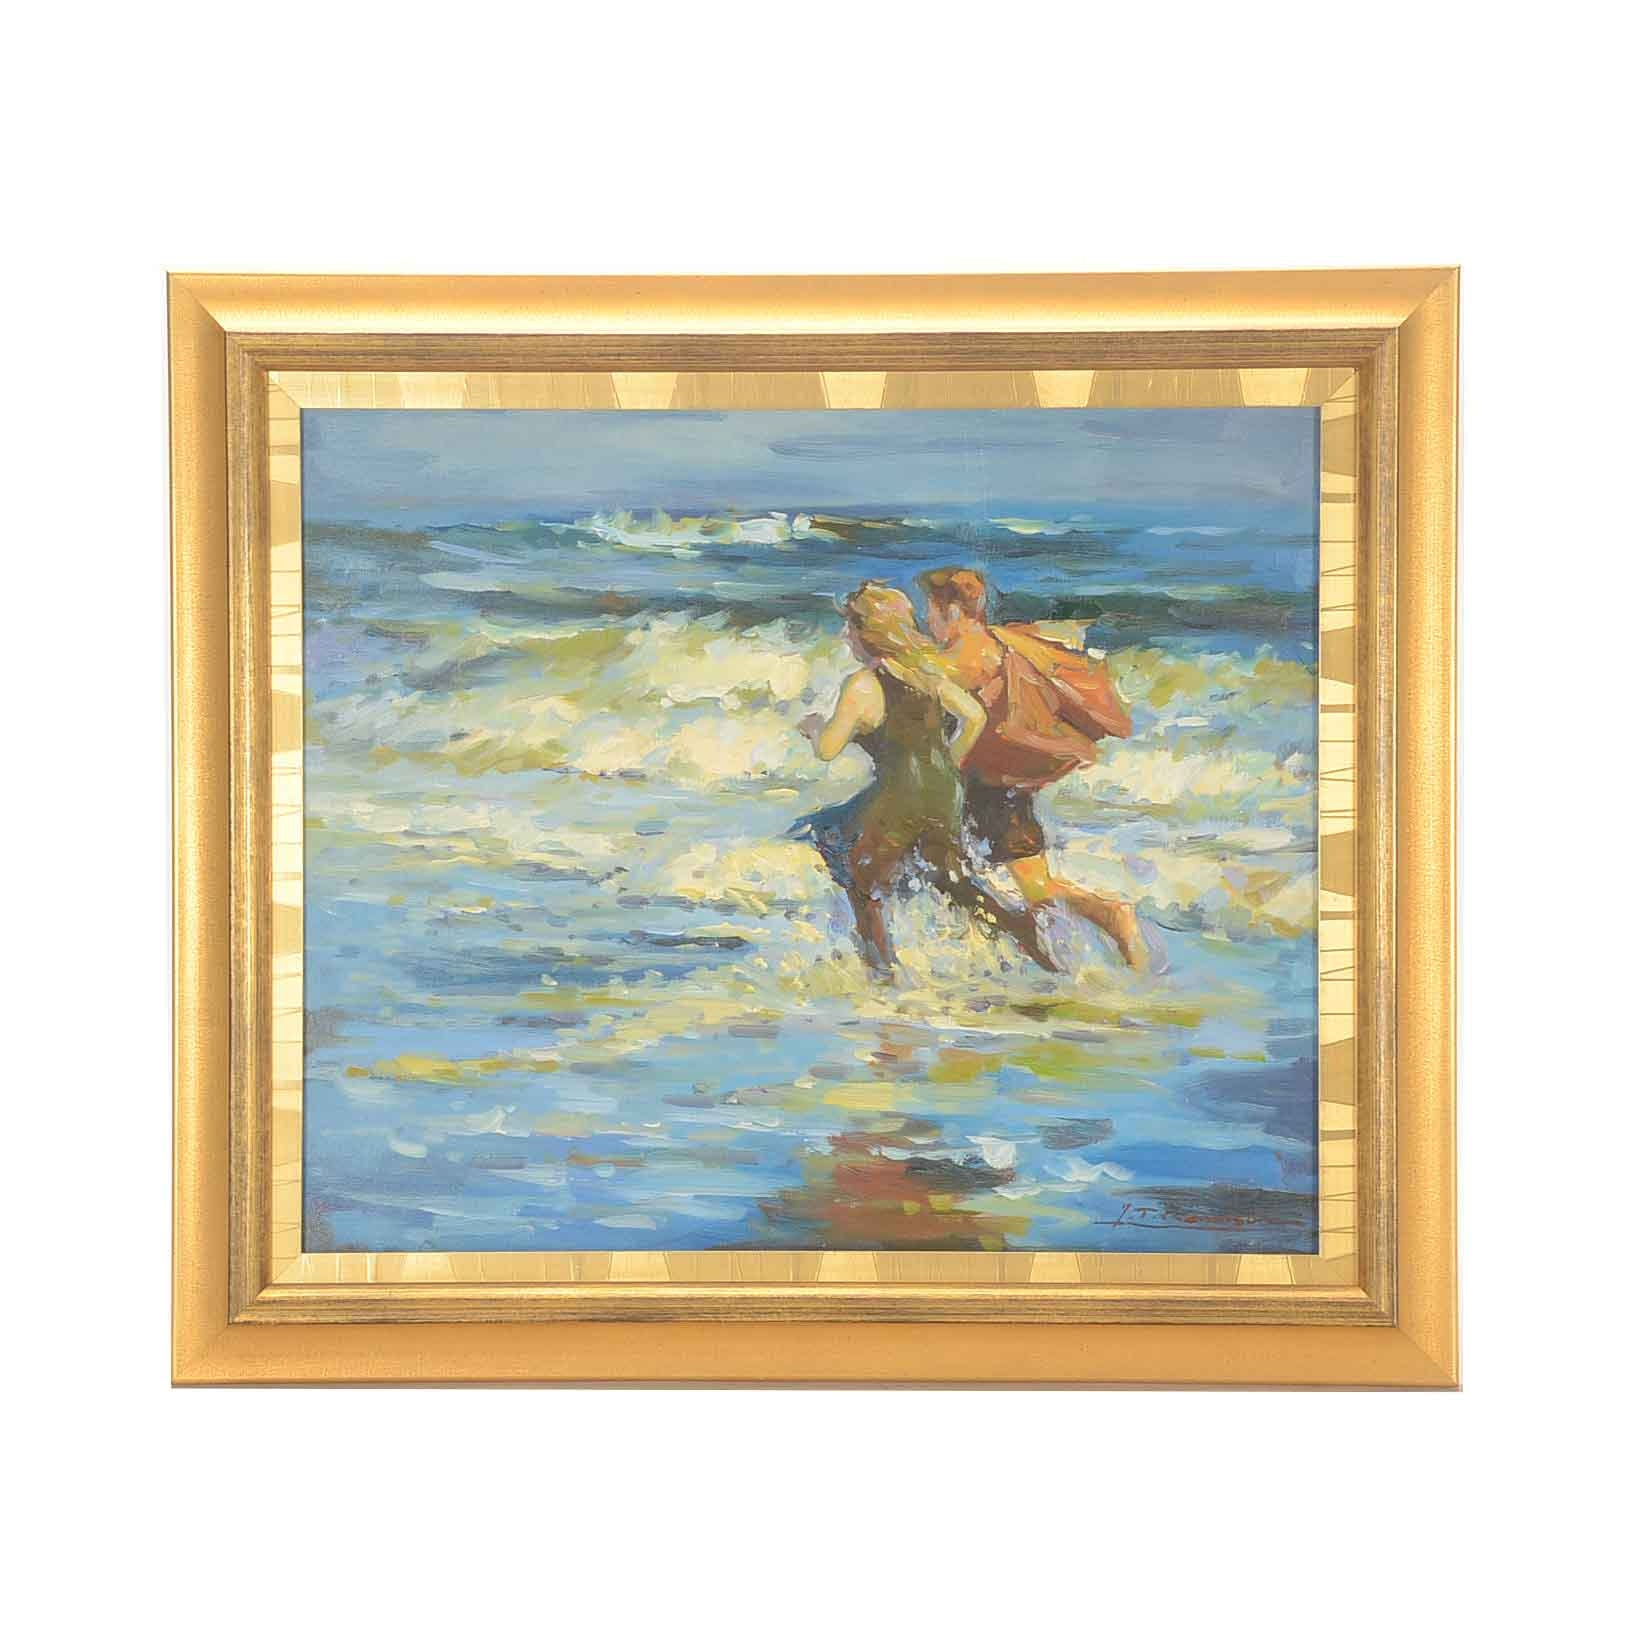 "J.T. Remison Copy Painting after Edward Henry Potthast ""At the Beach"""